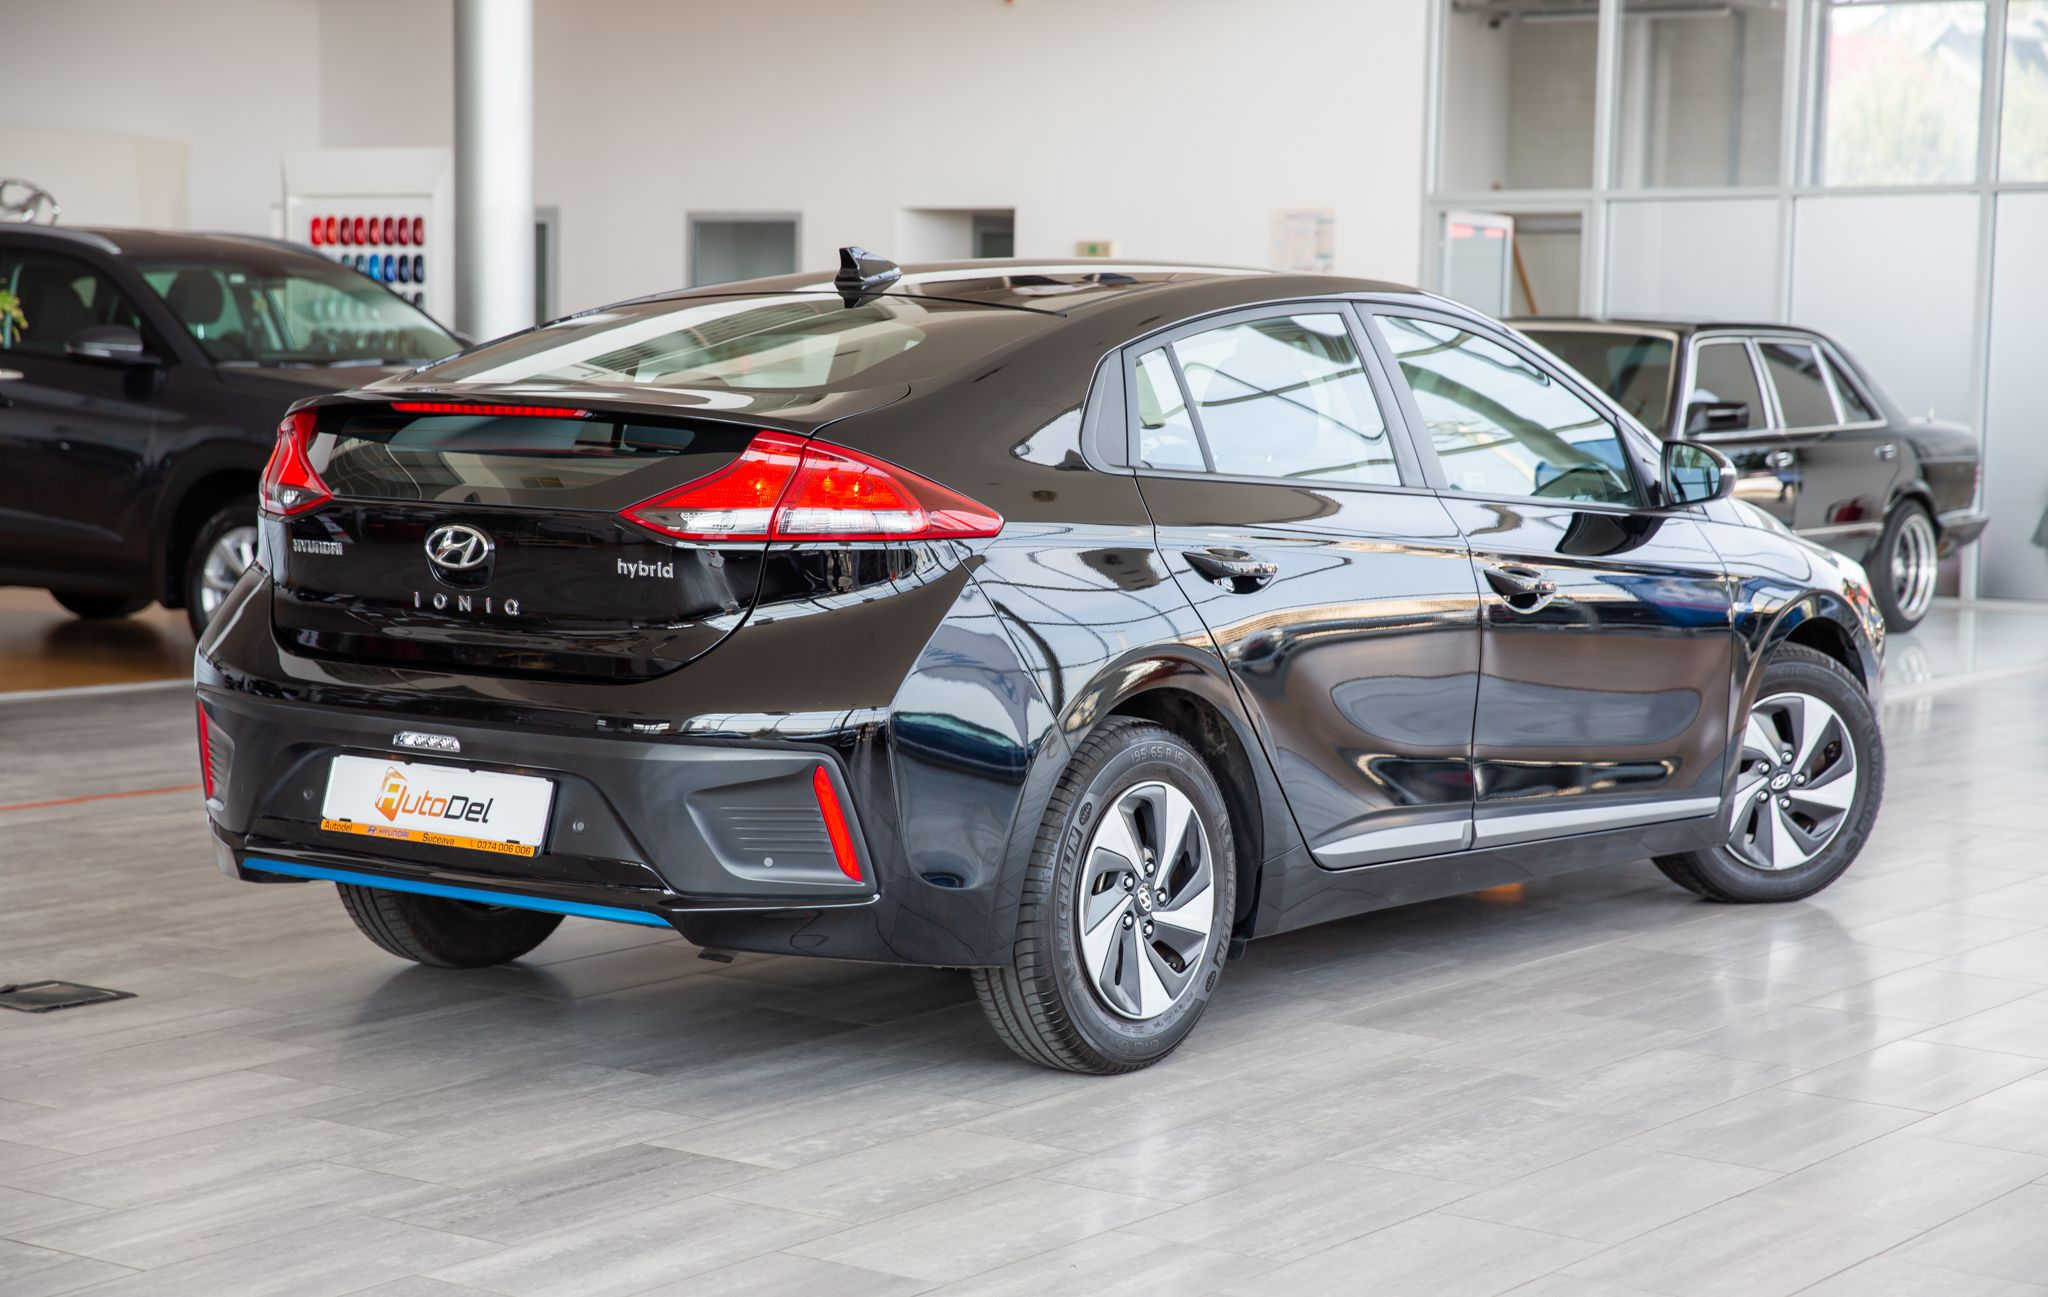 Hyundai Ioniq 2016 Second Hand